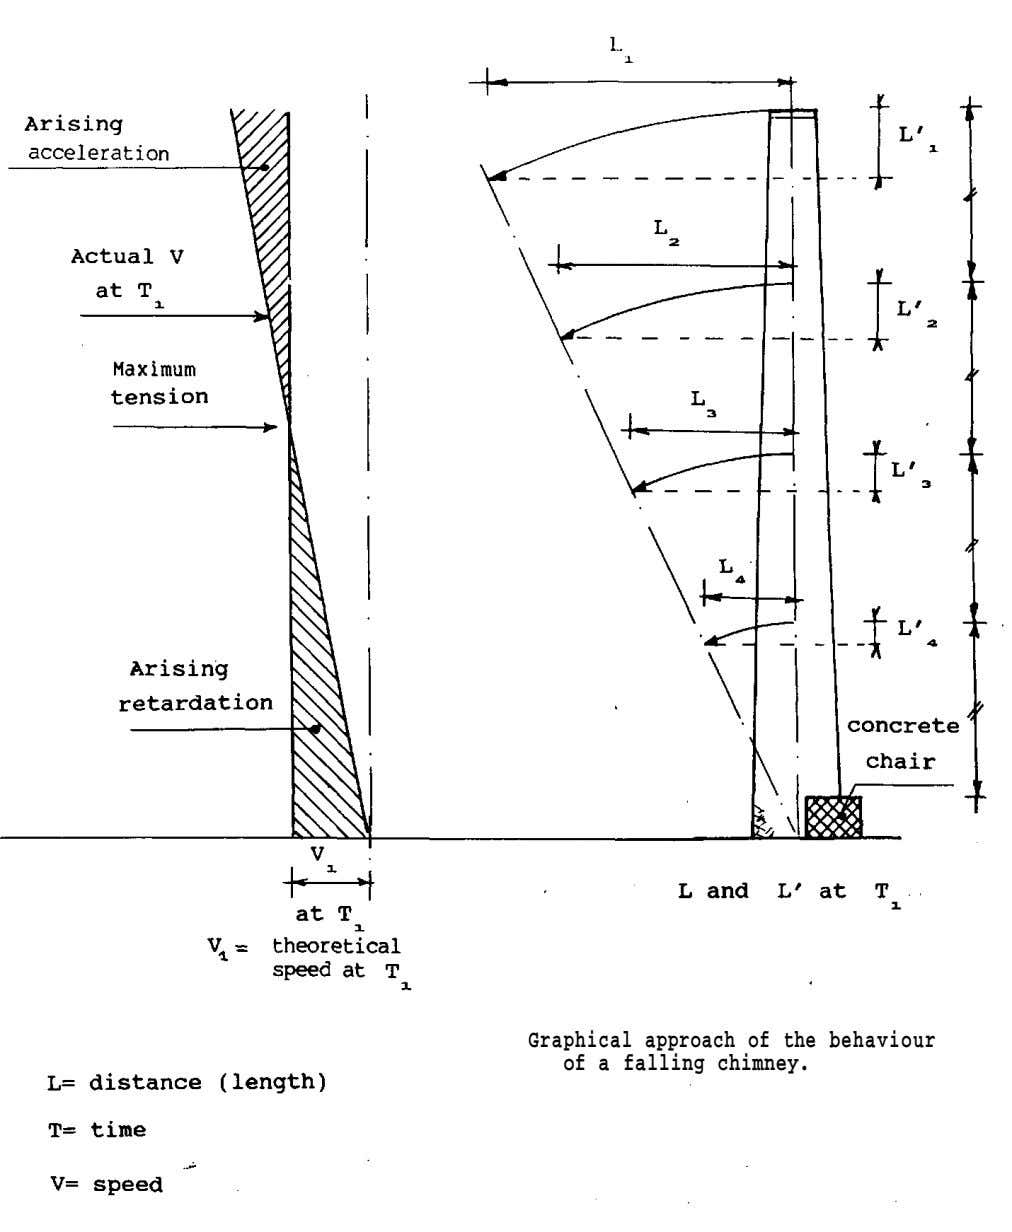 Graphical approach of the behaviour of a falling chimney.